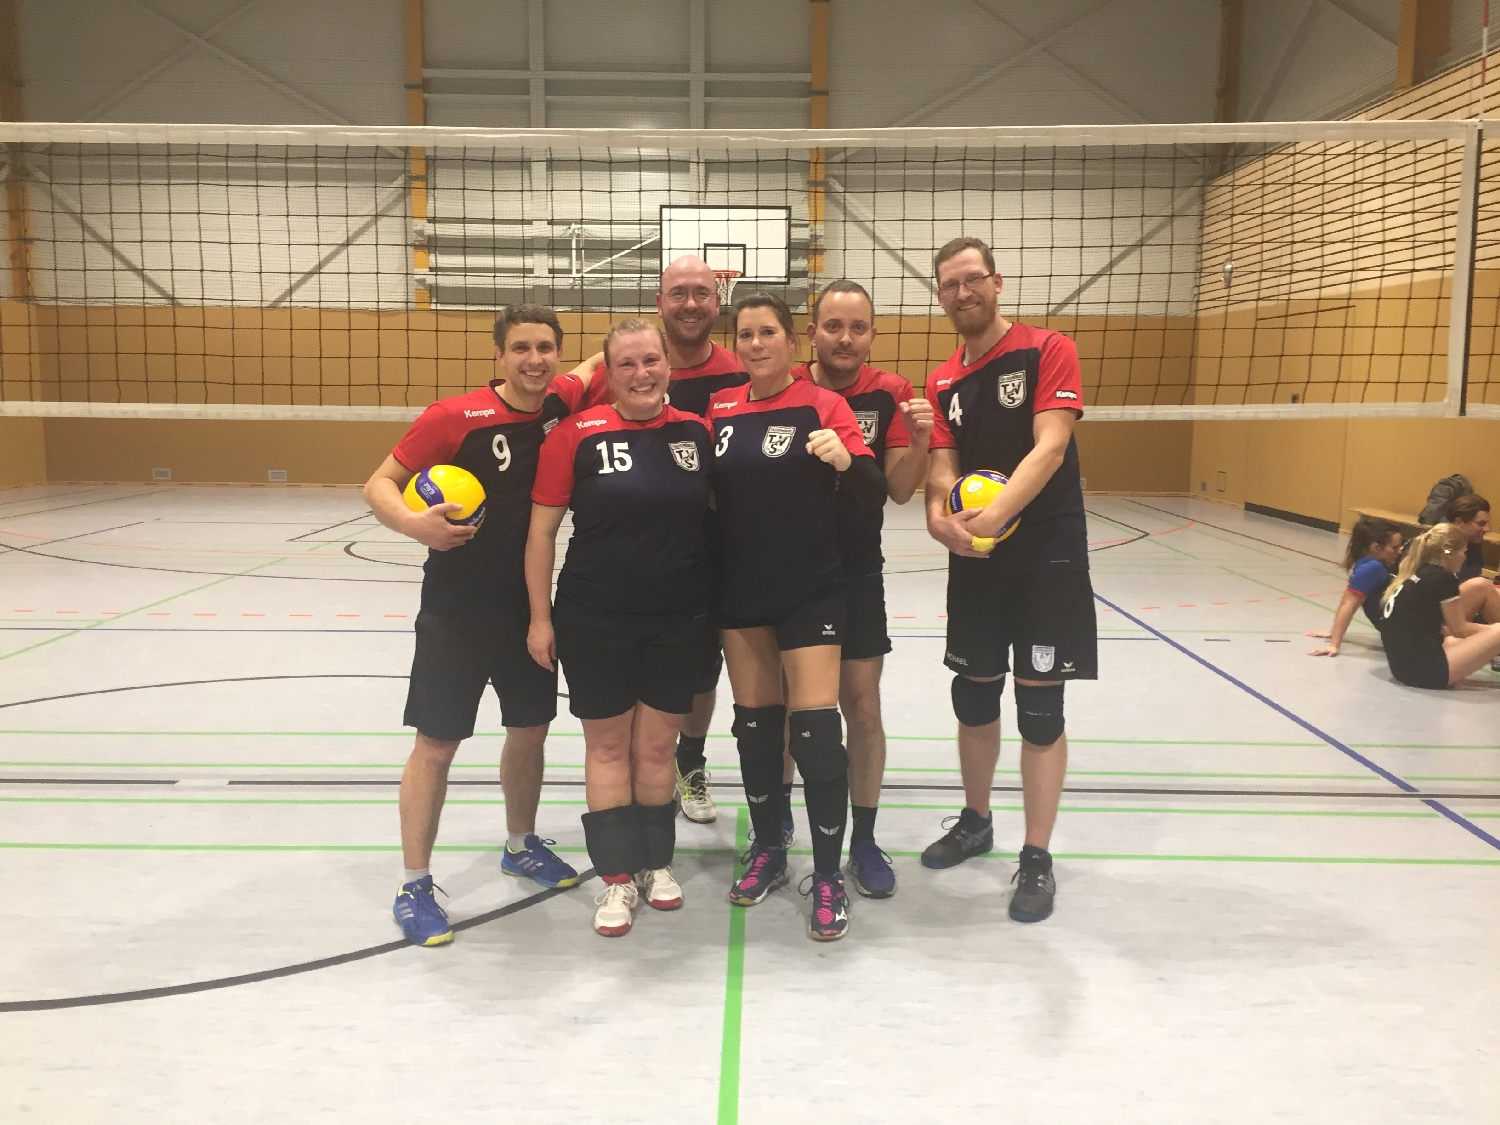 20191113 Mixedvolleyball Bild1